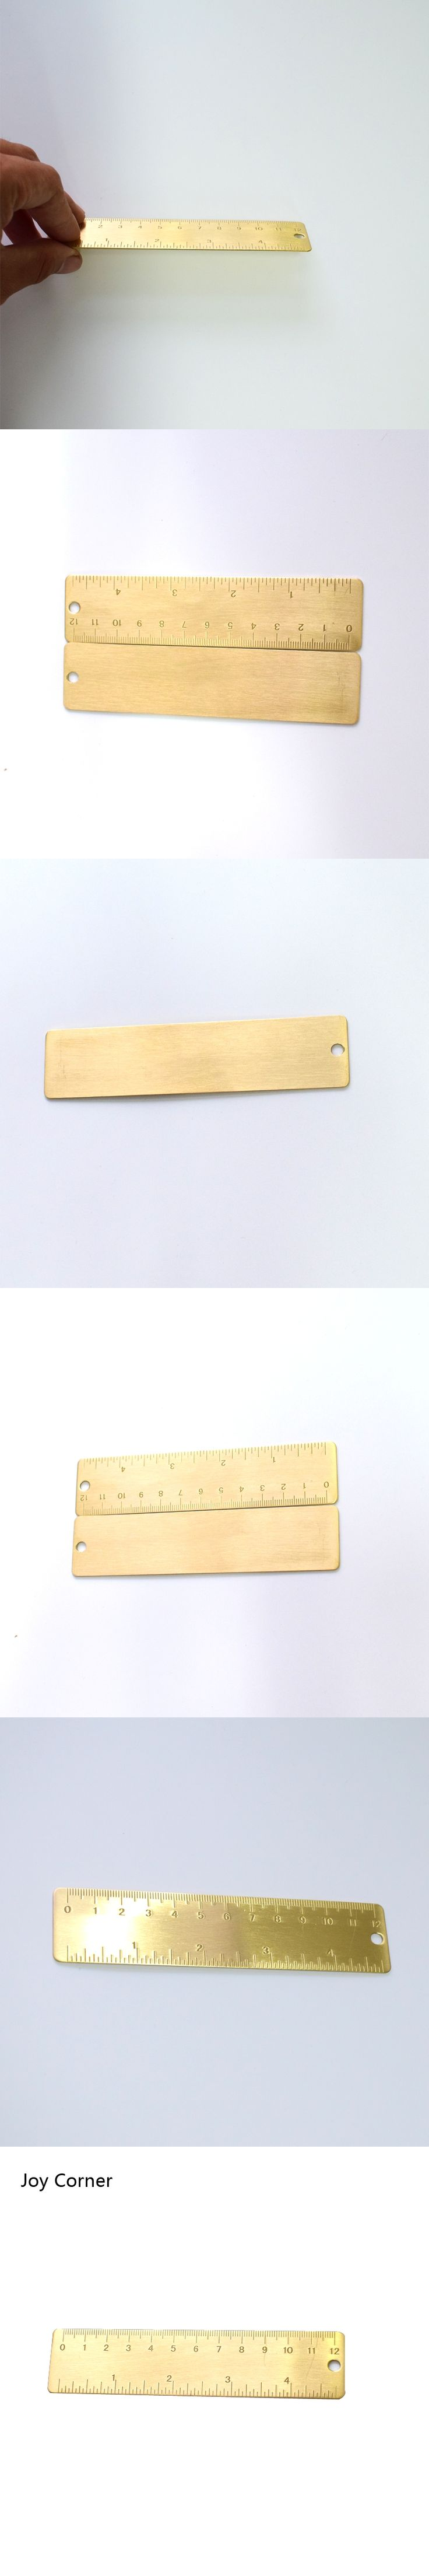 (2 Pieces/Lot) 2016 Brand New Arrive Copper Rulers 12 cm Handmade Retro Portable Scale Small Metal Rulers Pocket Ruler School